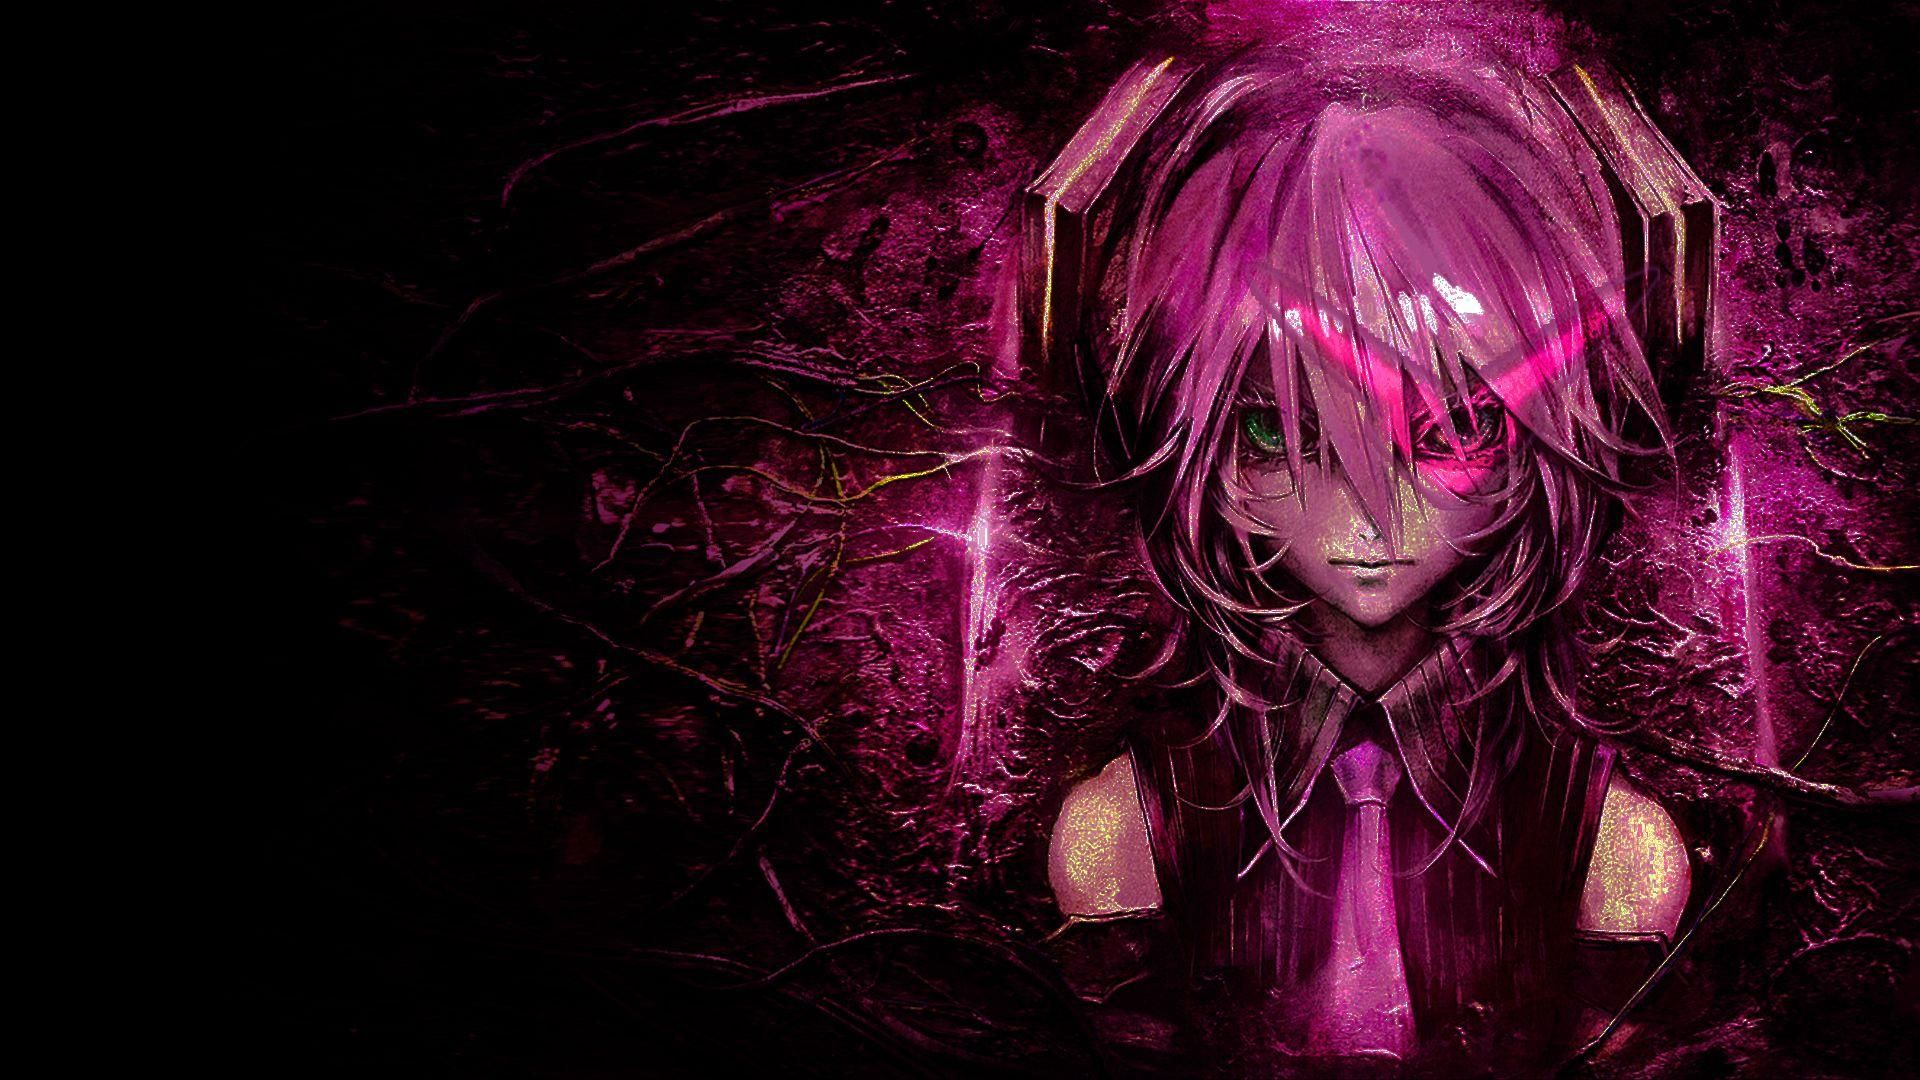 Best Anime Wallpapers Cool Anime Wallpapers Anime Background